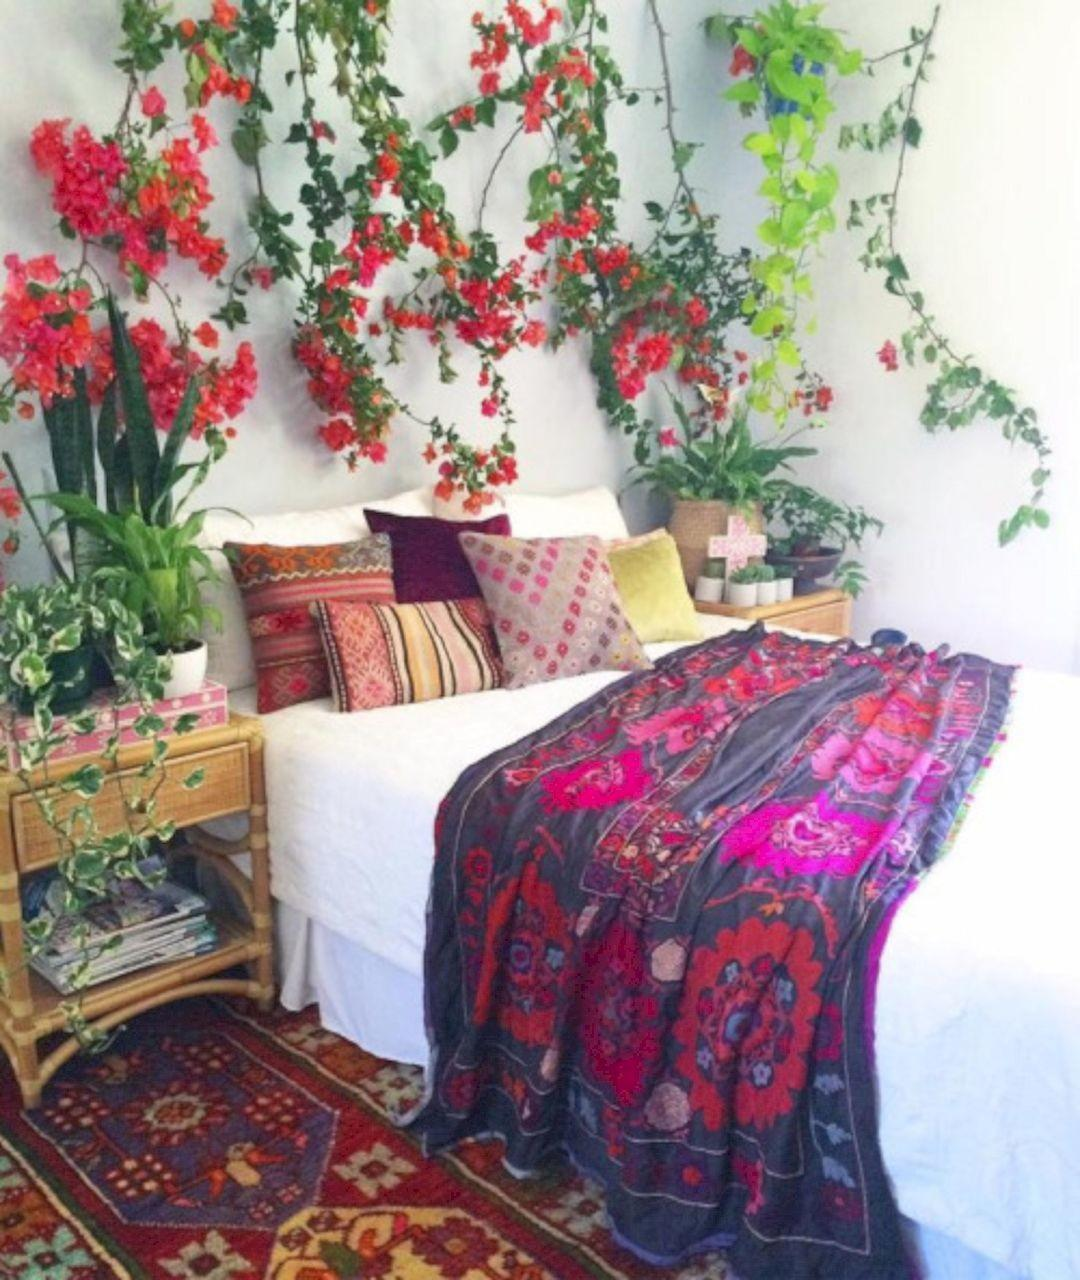 Adorable Bohemian Style Bedroom Decor Inspiration